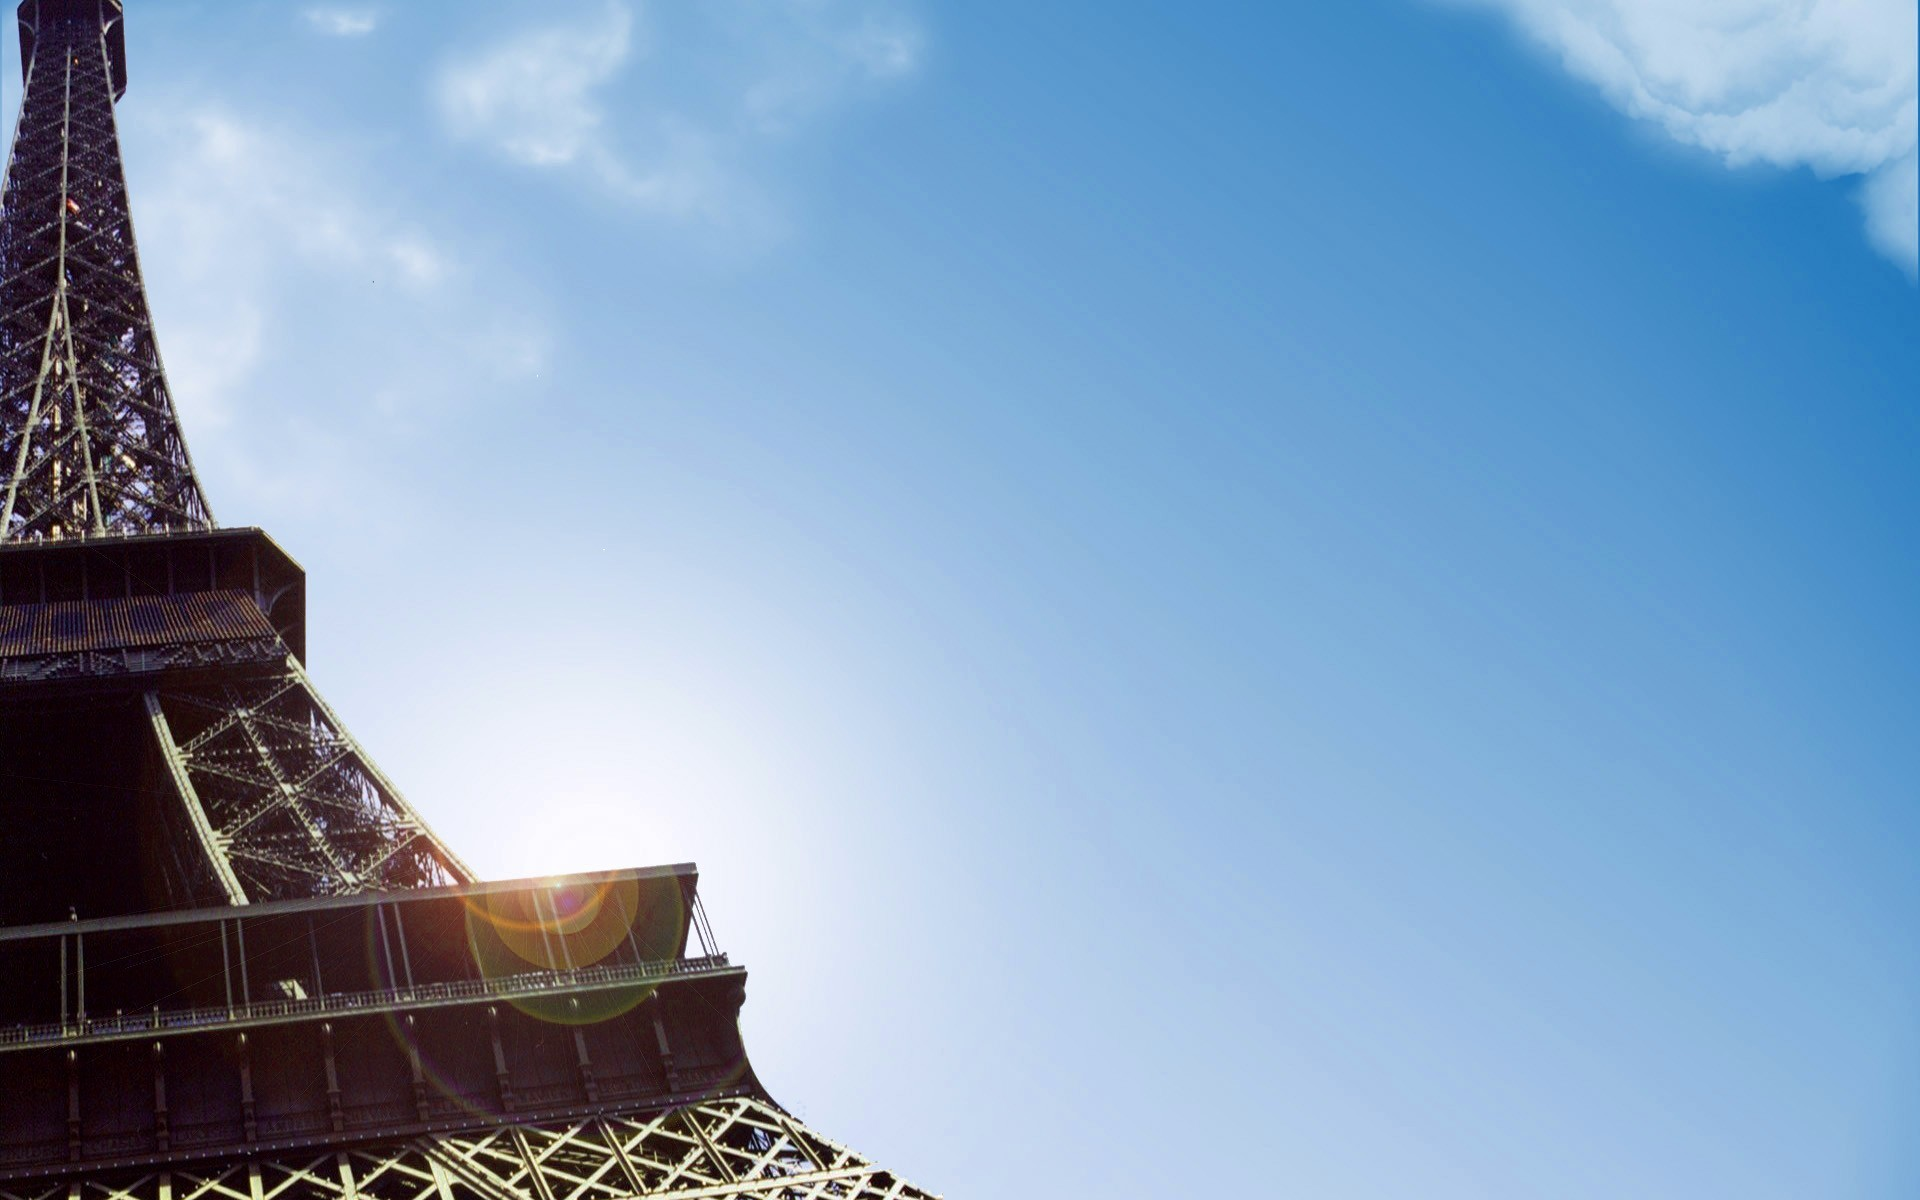 Landscapes Eiffel Tower Paris skyscapes HD Wallpaper